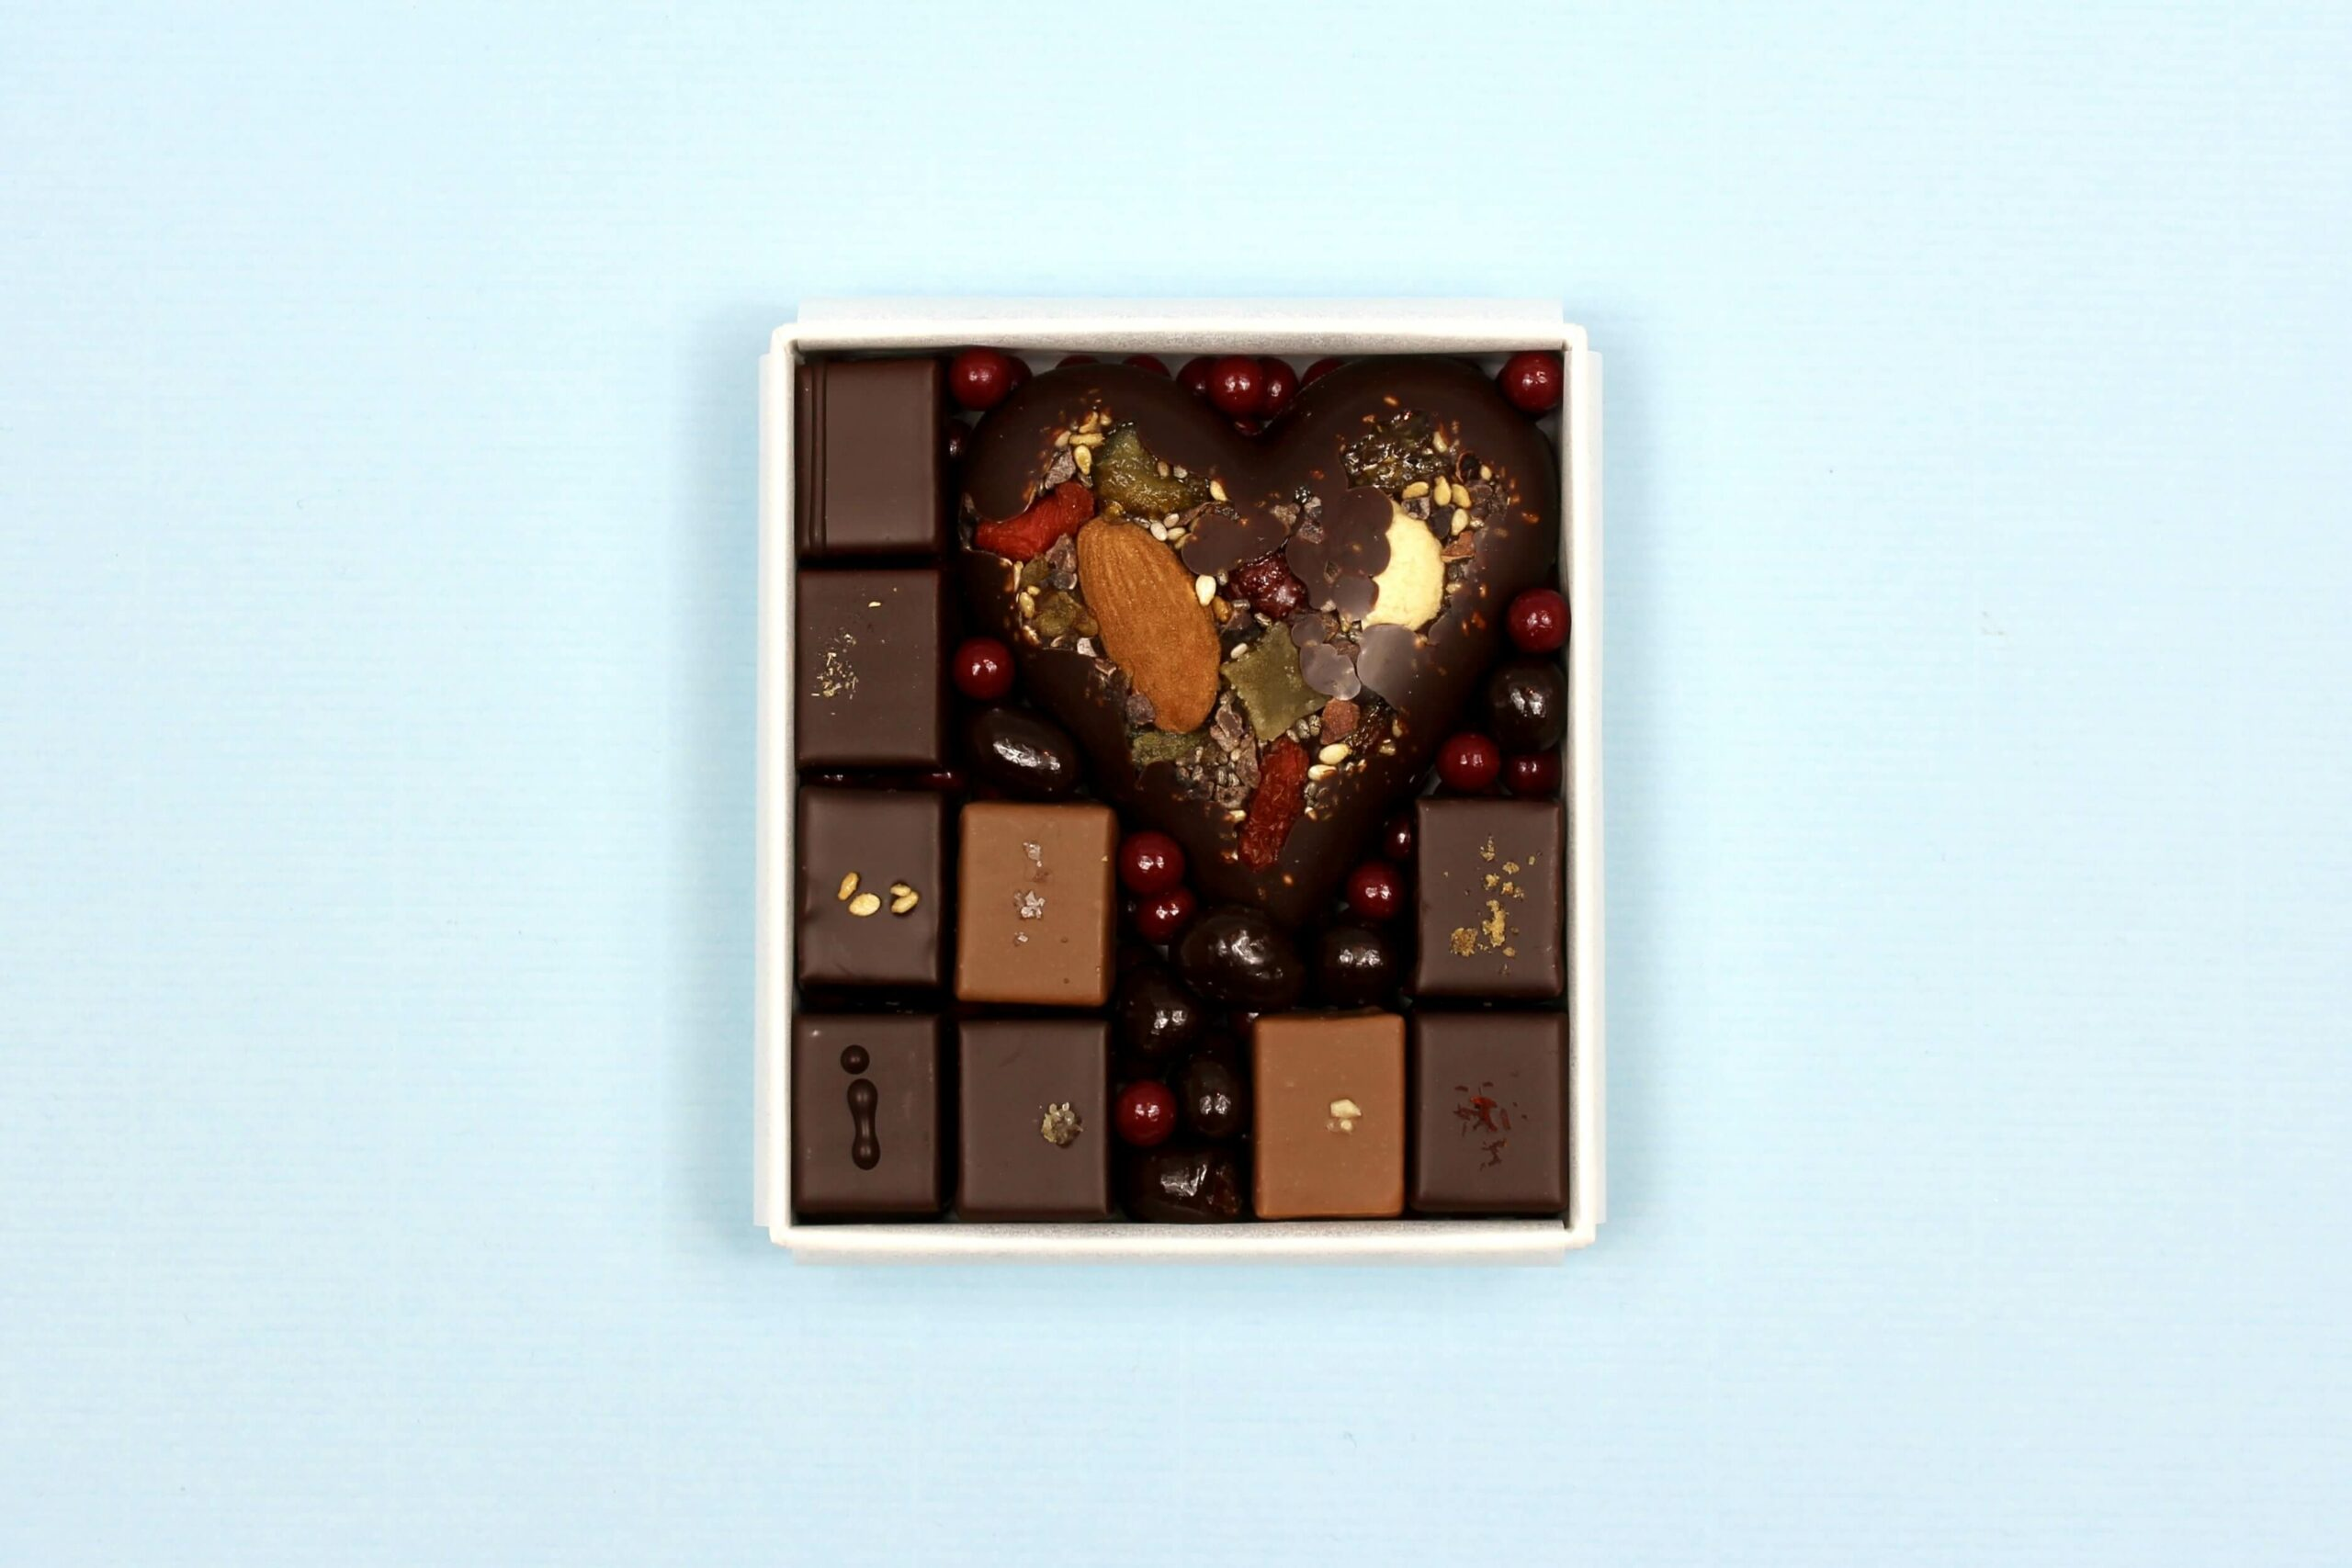 hd ghent by hilde devolder chocolater box with chocolates and more